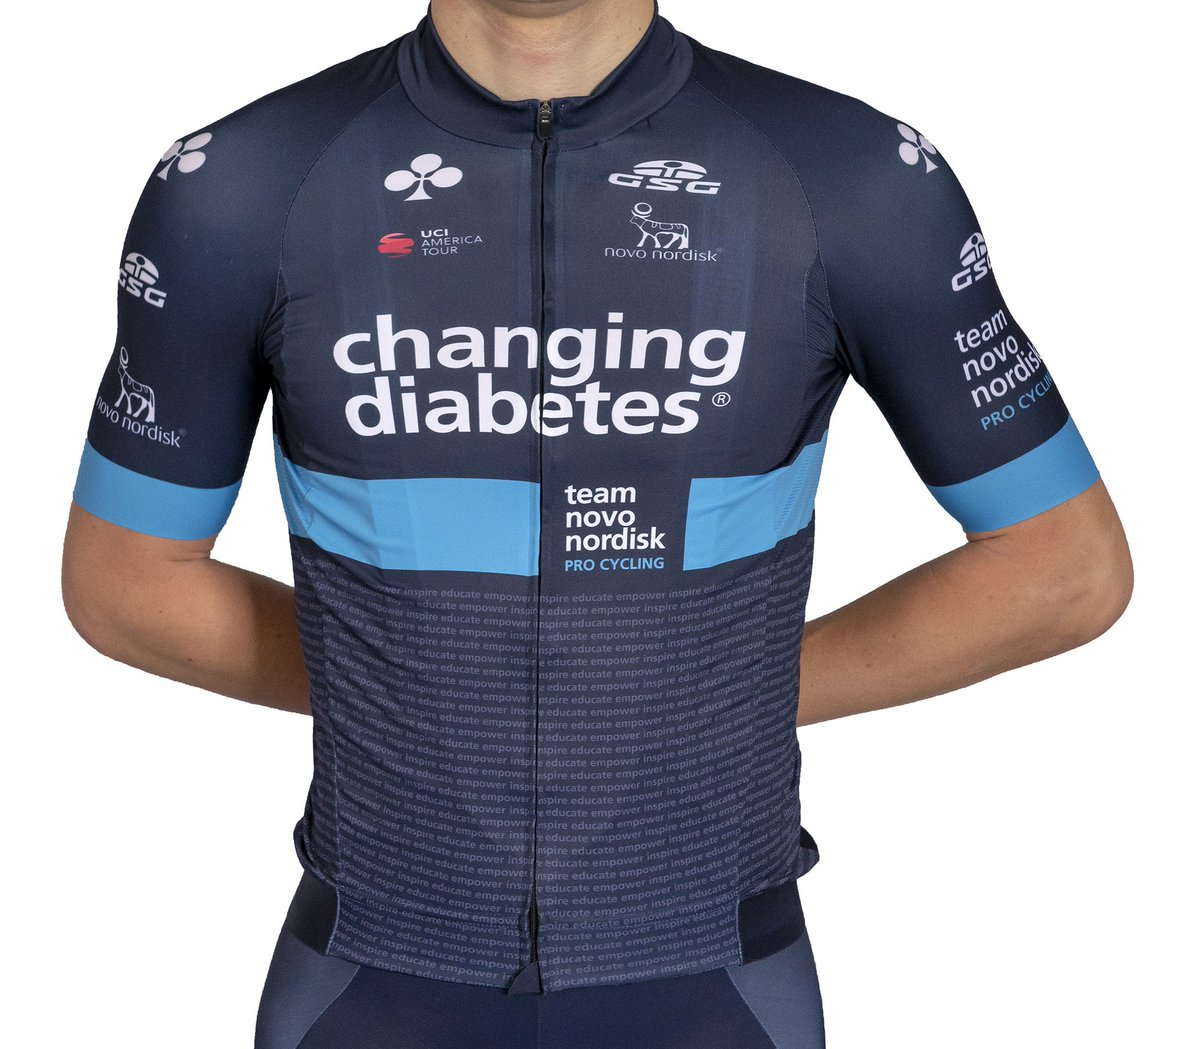 test Twitter Media - Introducing @teamnovonordisk's 2019 @Giessegi_srl jersey!  The 2019 jersey will continue to feature the words #ChangingDiabetes with the words 'inspire, educate and empower' added below the light blue circle, the global symbol for #diabetes awareness. https://t.co/1Jq09vRBaf https://t.co/XXFkUT710d